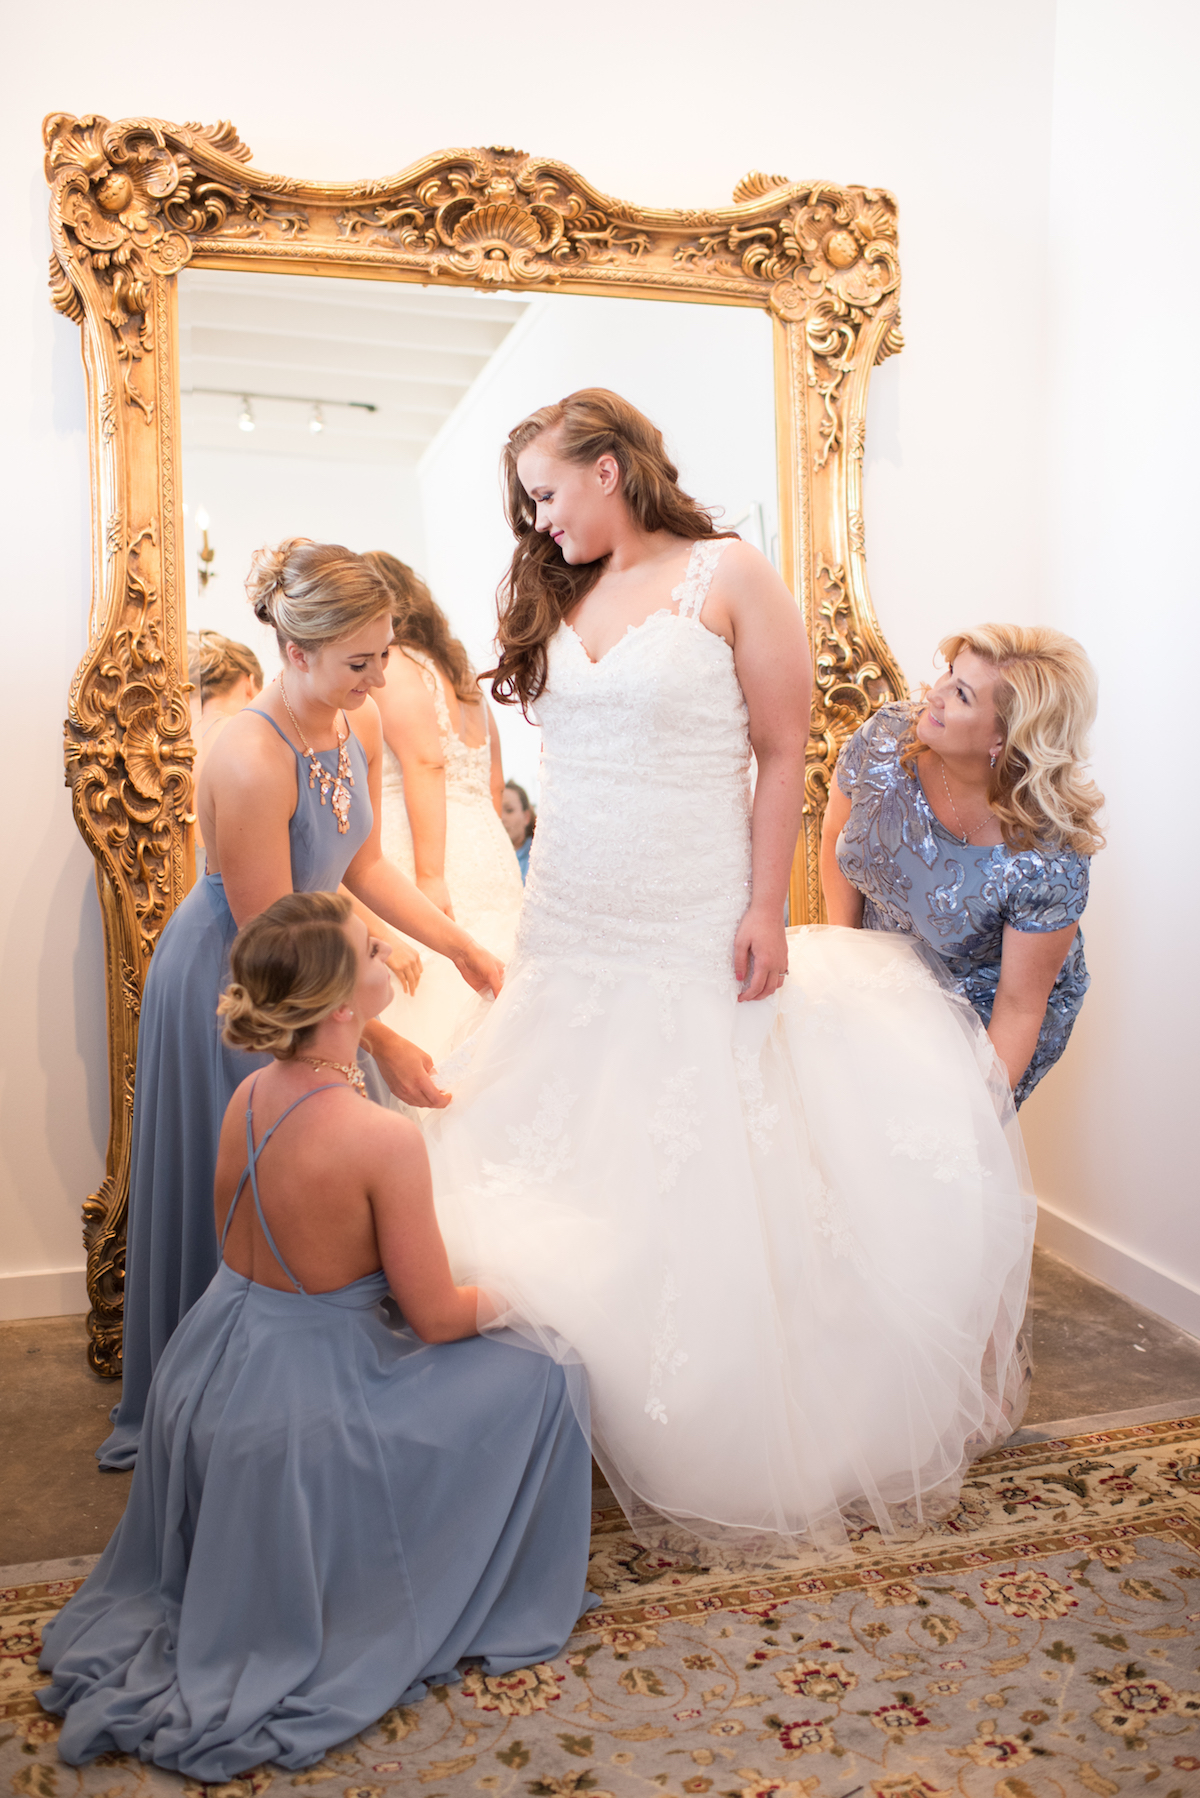 Taryn in front of the luxurious full size mirror in the bridal suite